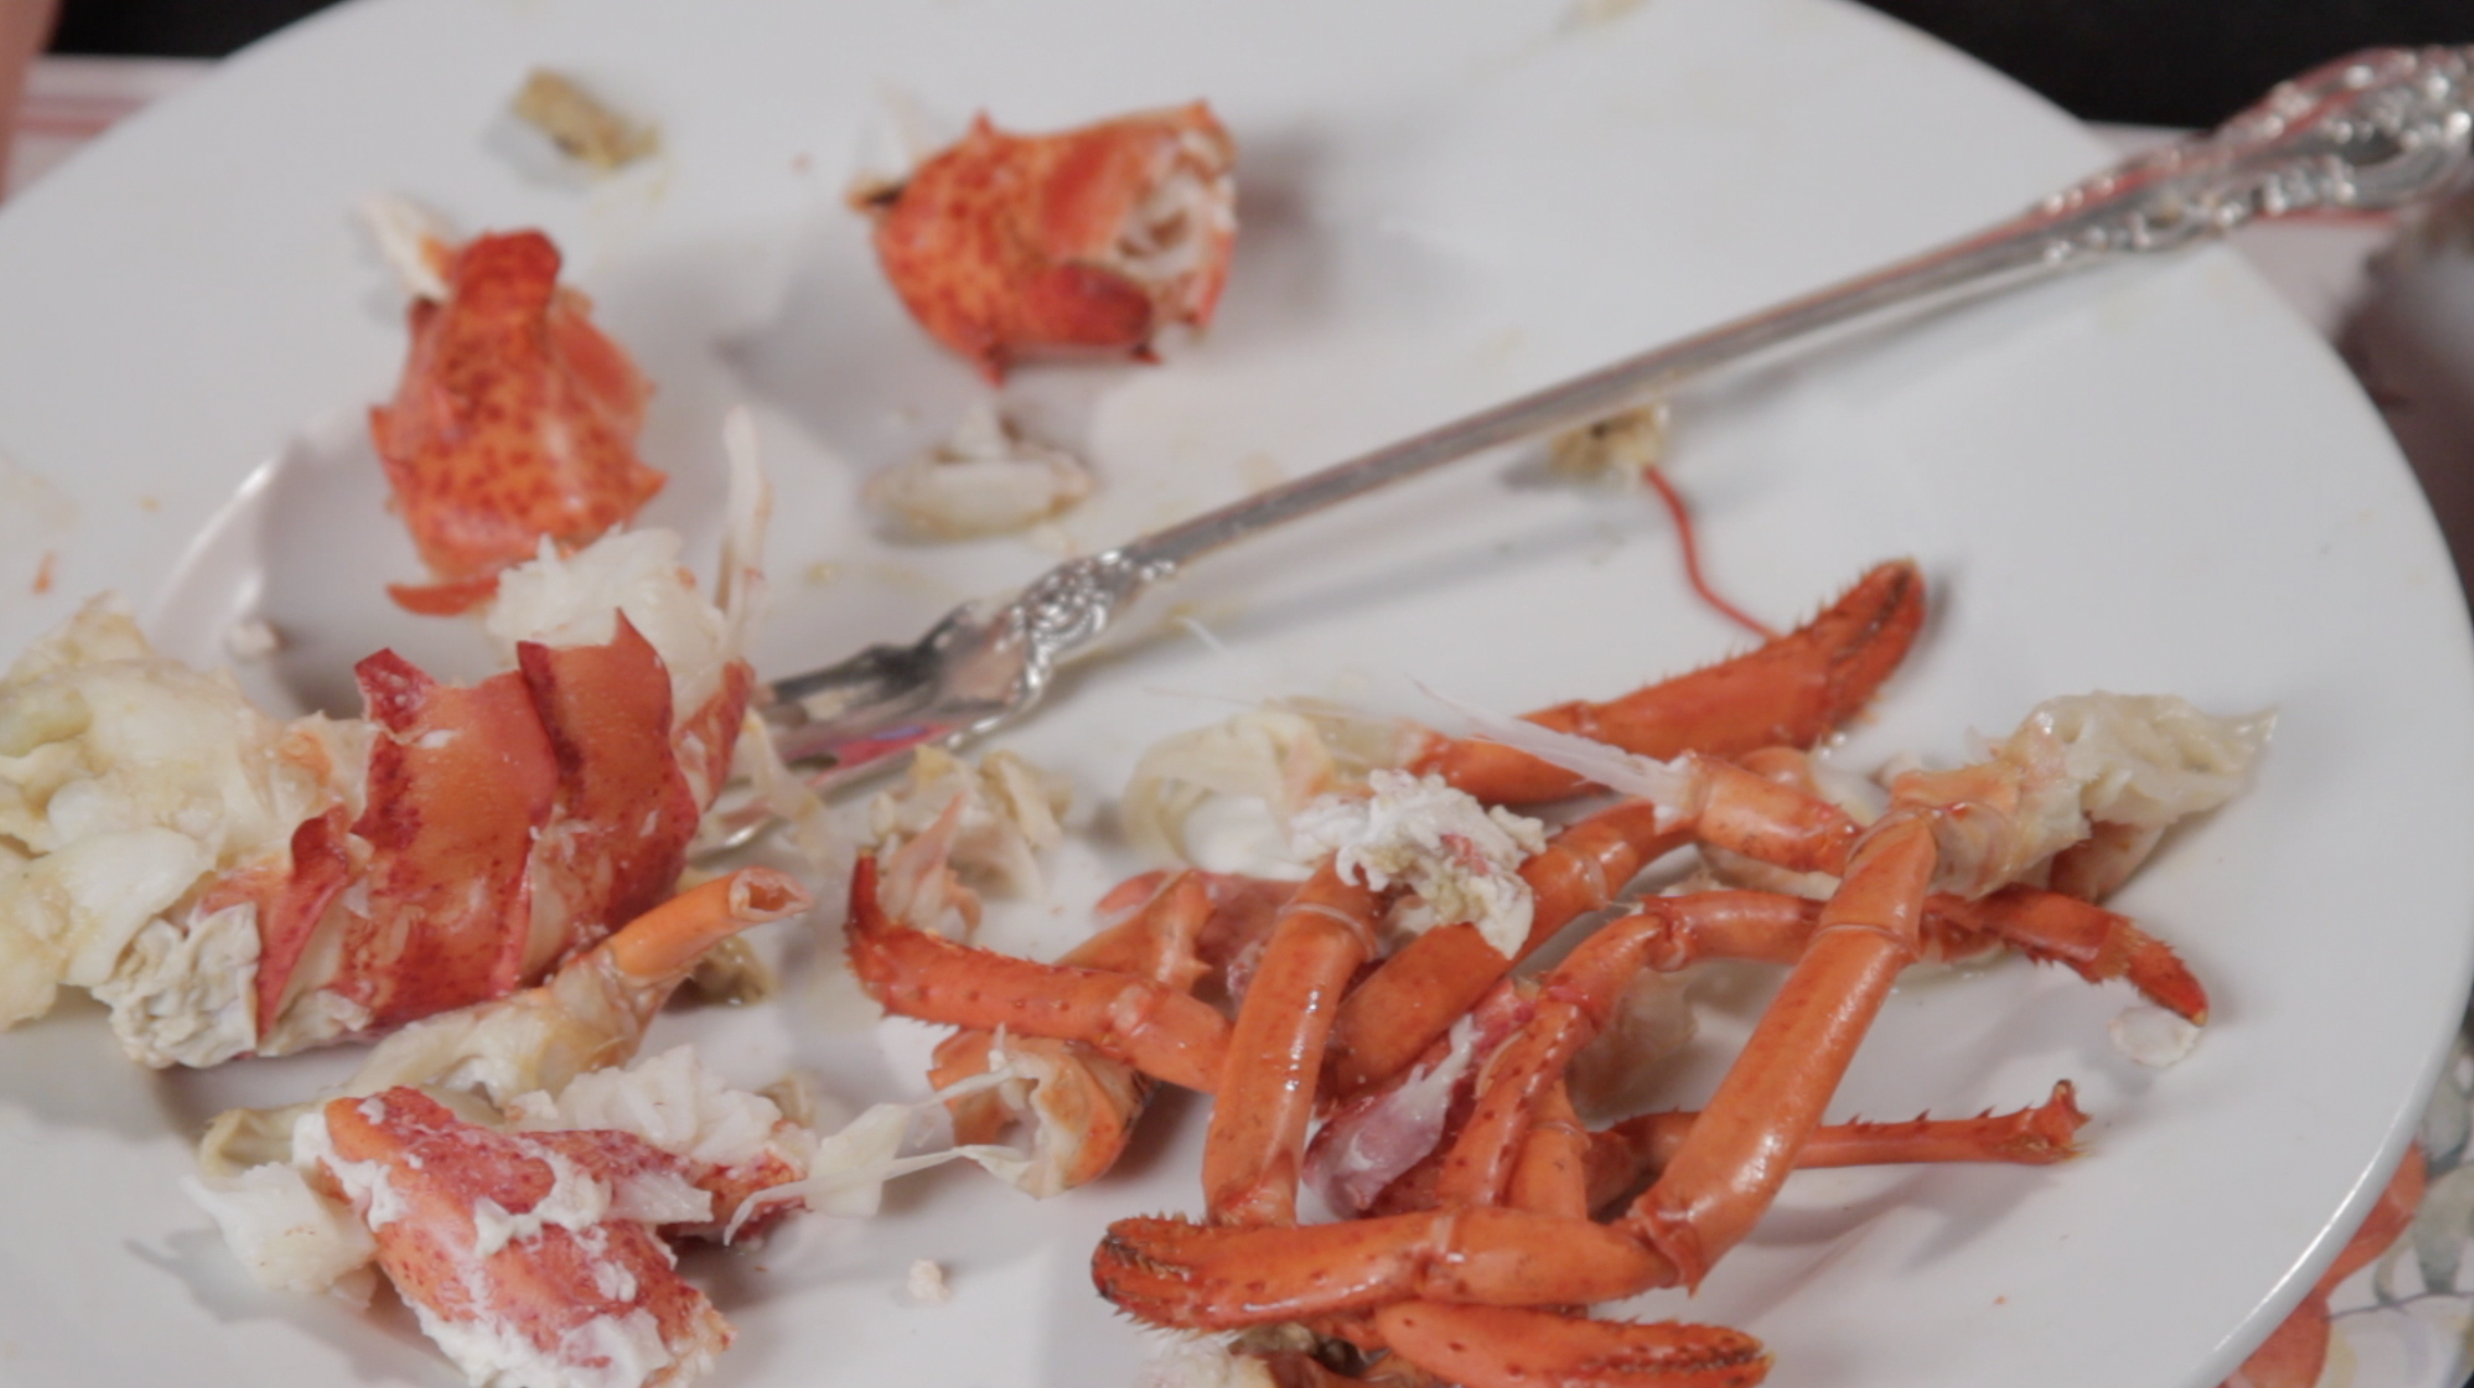 How to Eat Lobster  2011 (production still) HD video, duration 10 minutes Photo and video courtesy of Sean Flaherty